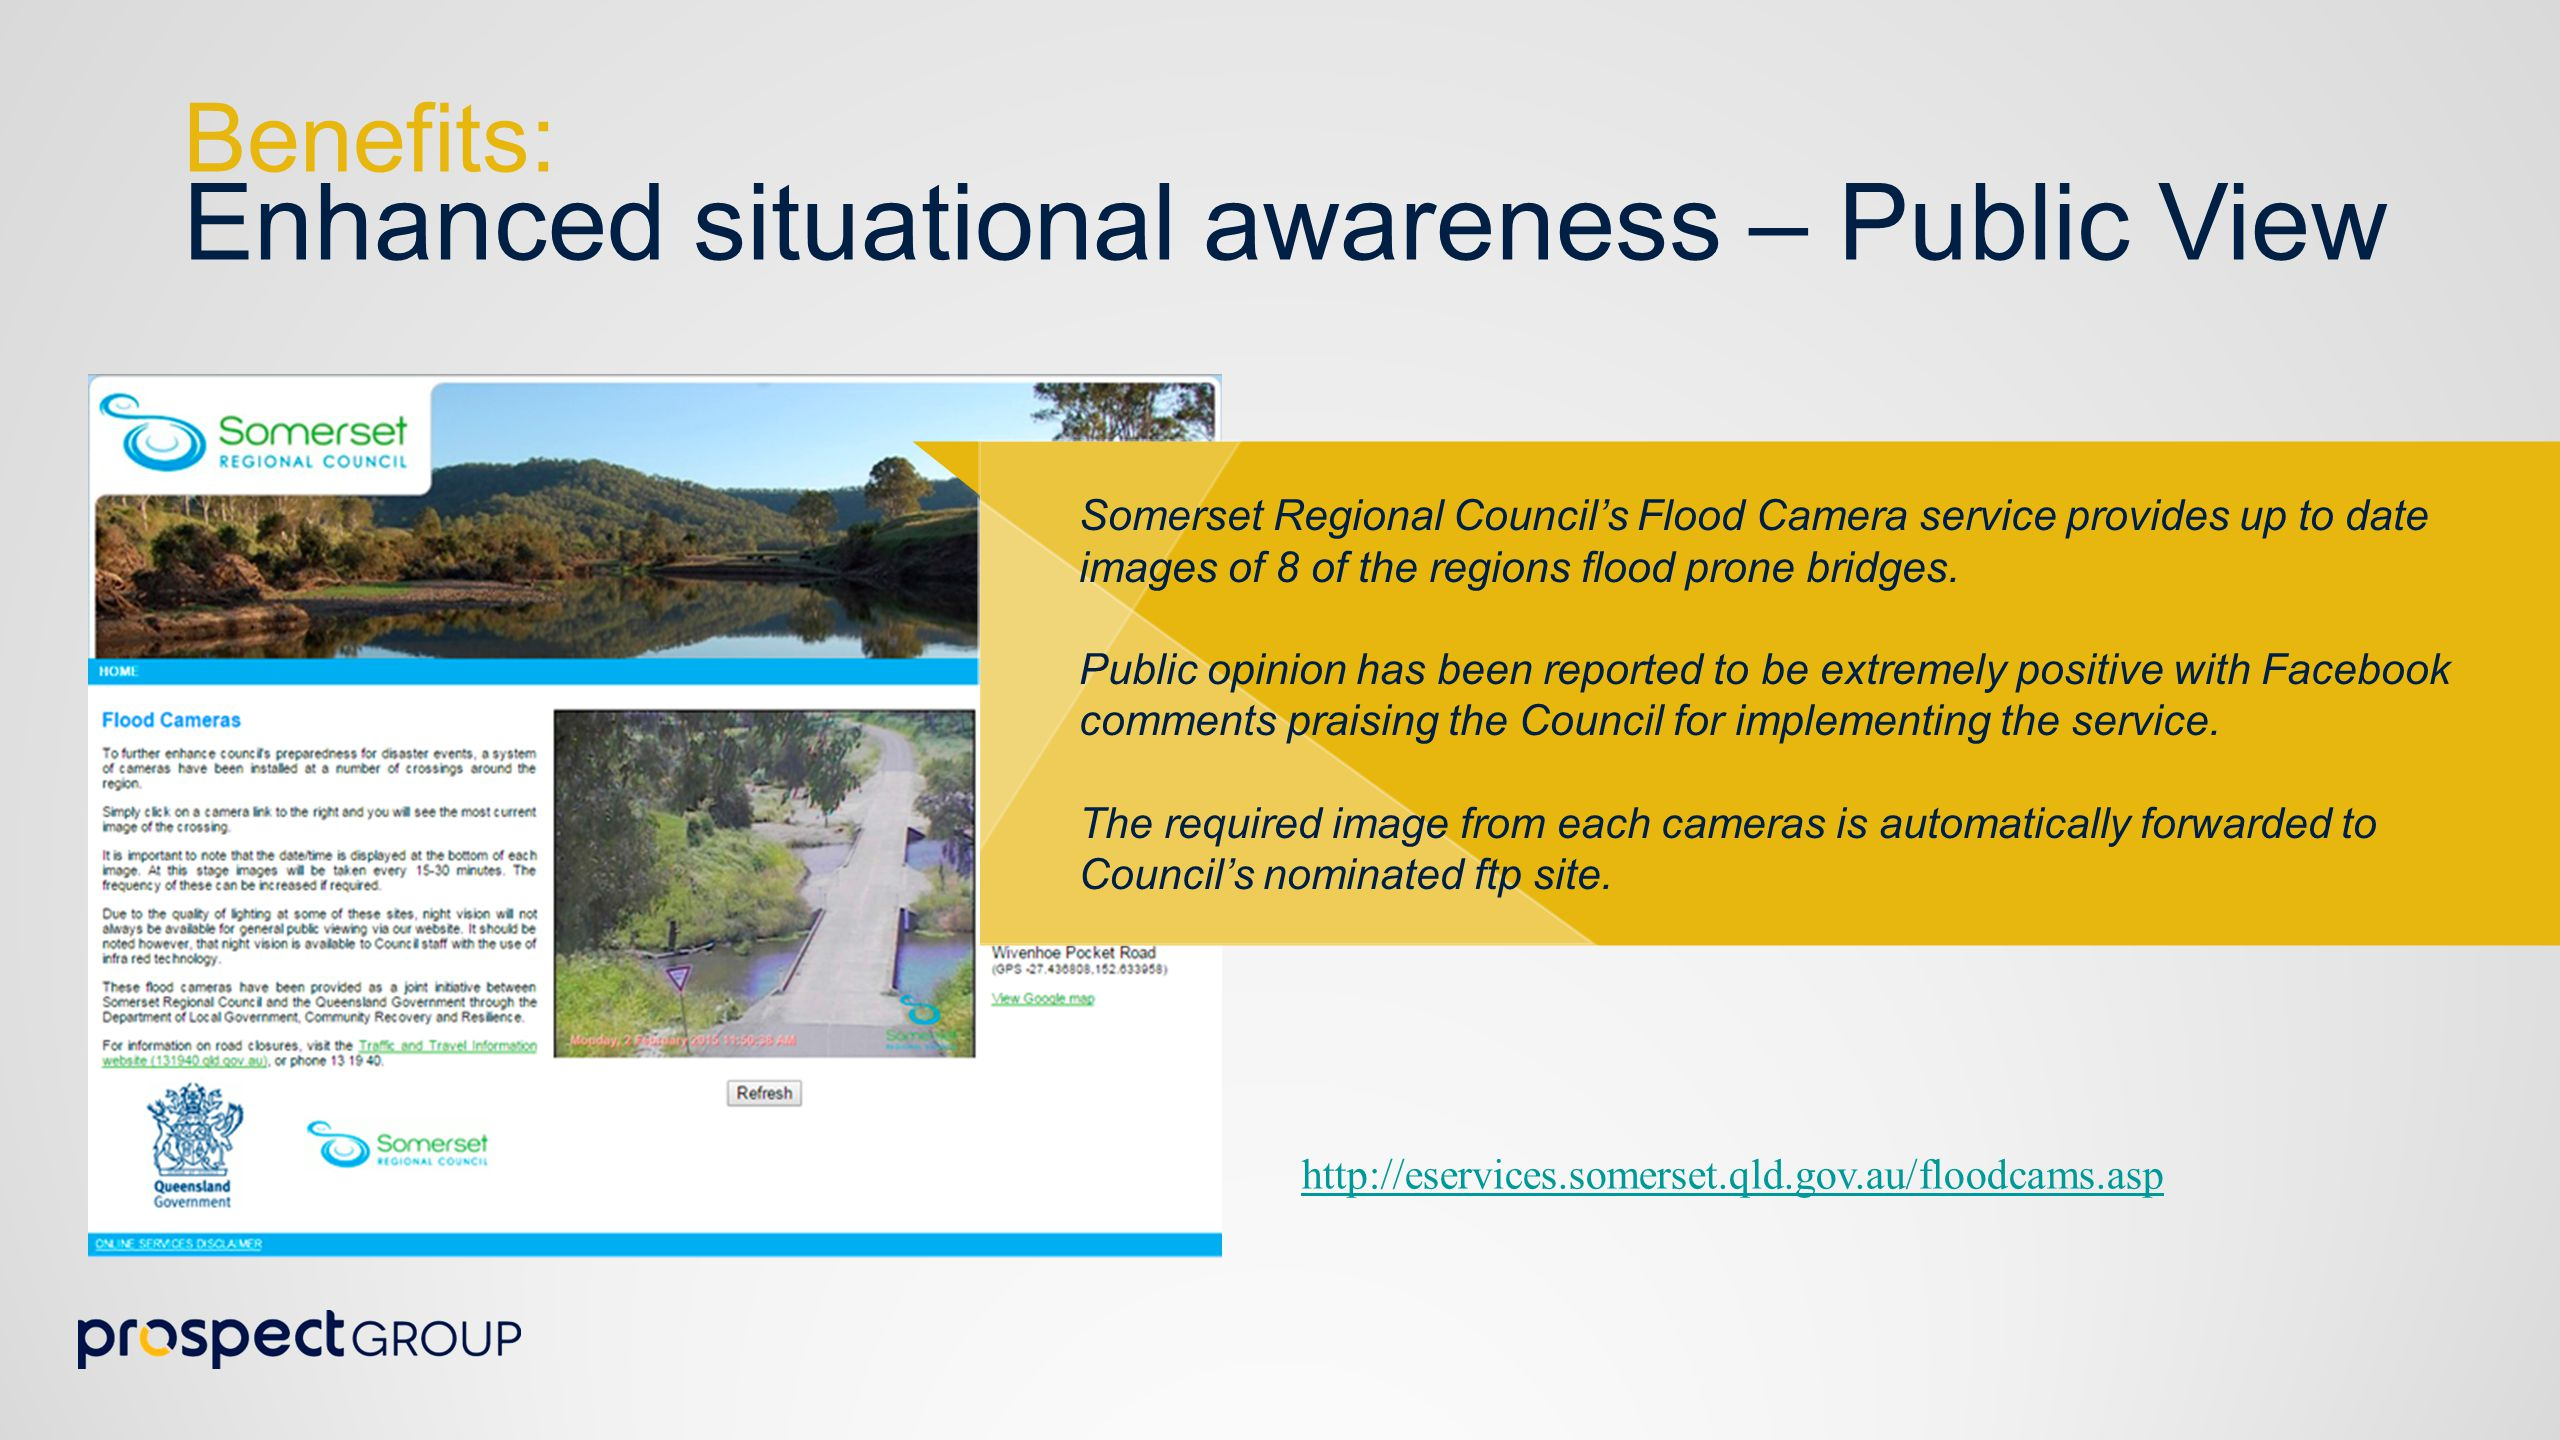 http://eservices.somerset.qld.gov.au/floodcams.asp Benefits: Enhanced situational awareness – Public View Somerset Regional Council's Flood Camera service provides up to date images of 8 of the regions flood prone bridges.